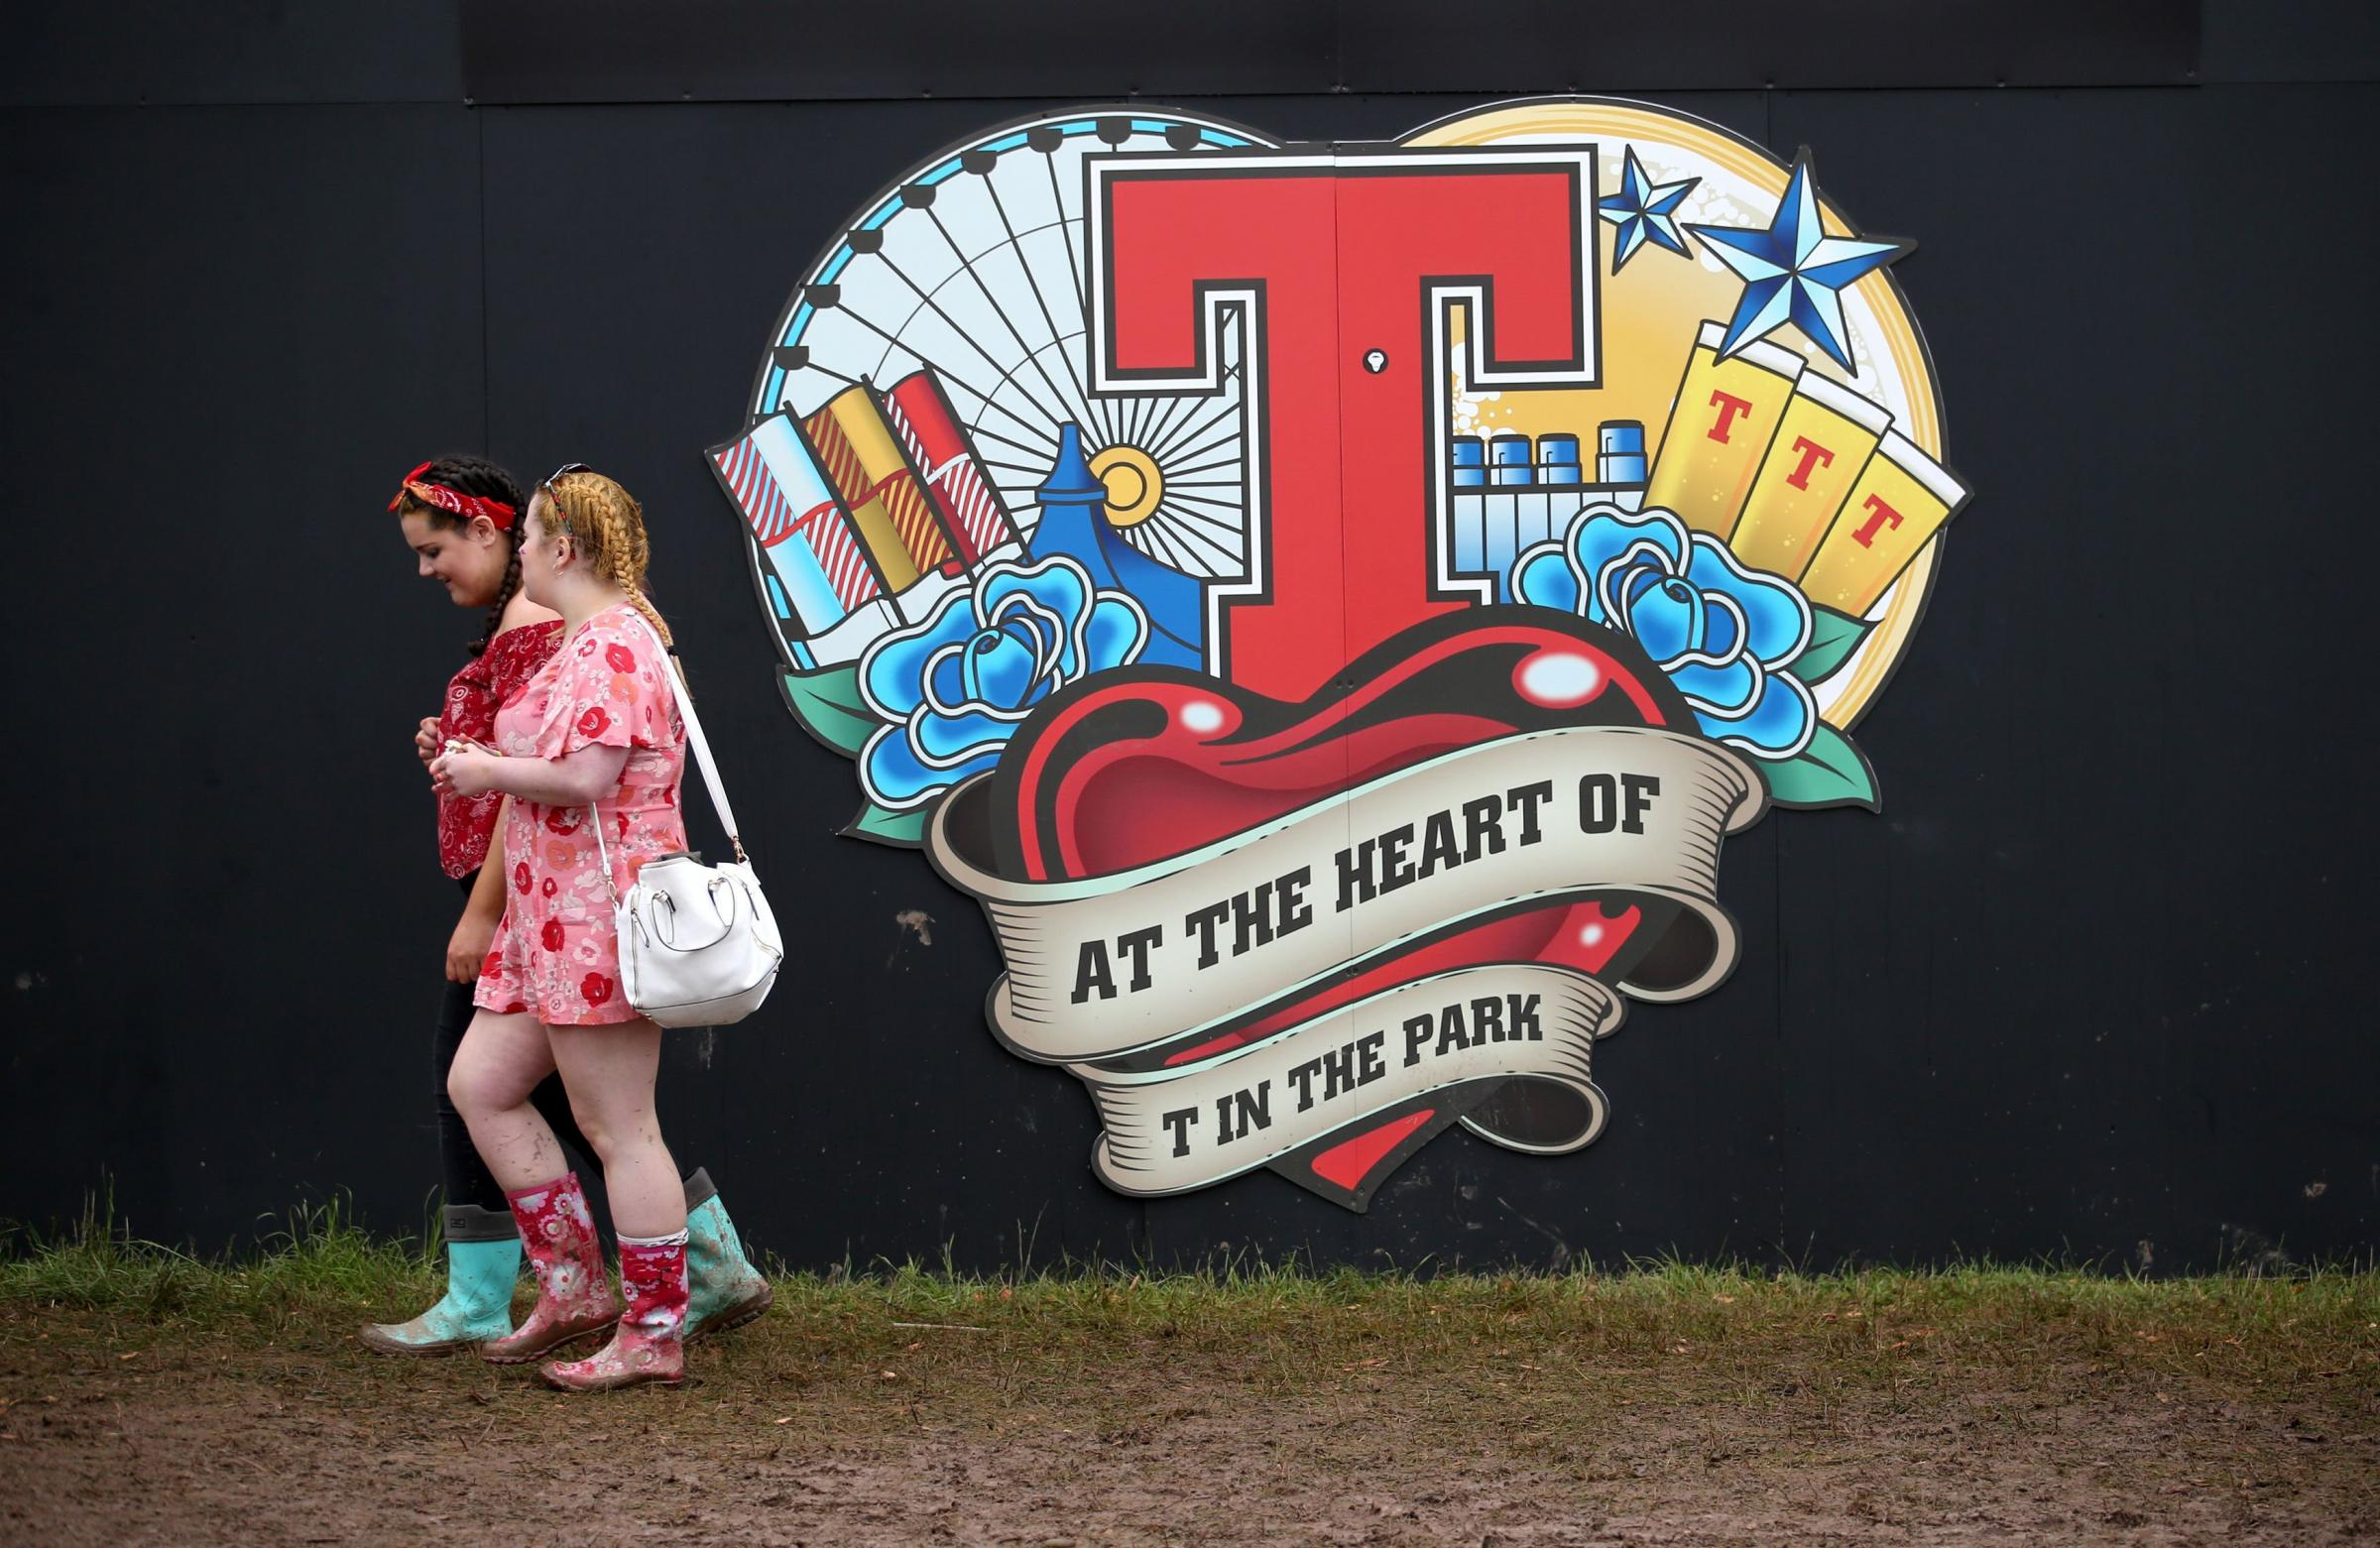 Festivalgoers during the second day of T in the Park, the annual music festival held at Strathallan Castle, Perthshire. PRESS ASSOCIATION Photo. Picture date: Saturday July 9, 2016. Photo credit should read: Jane Barlow/PA Wire.